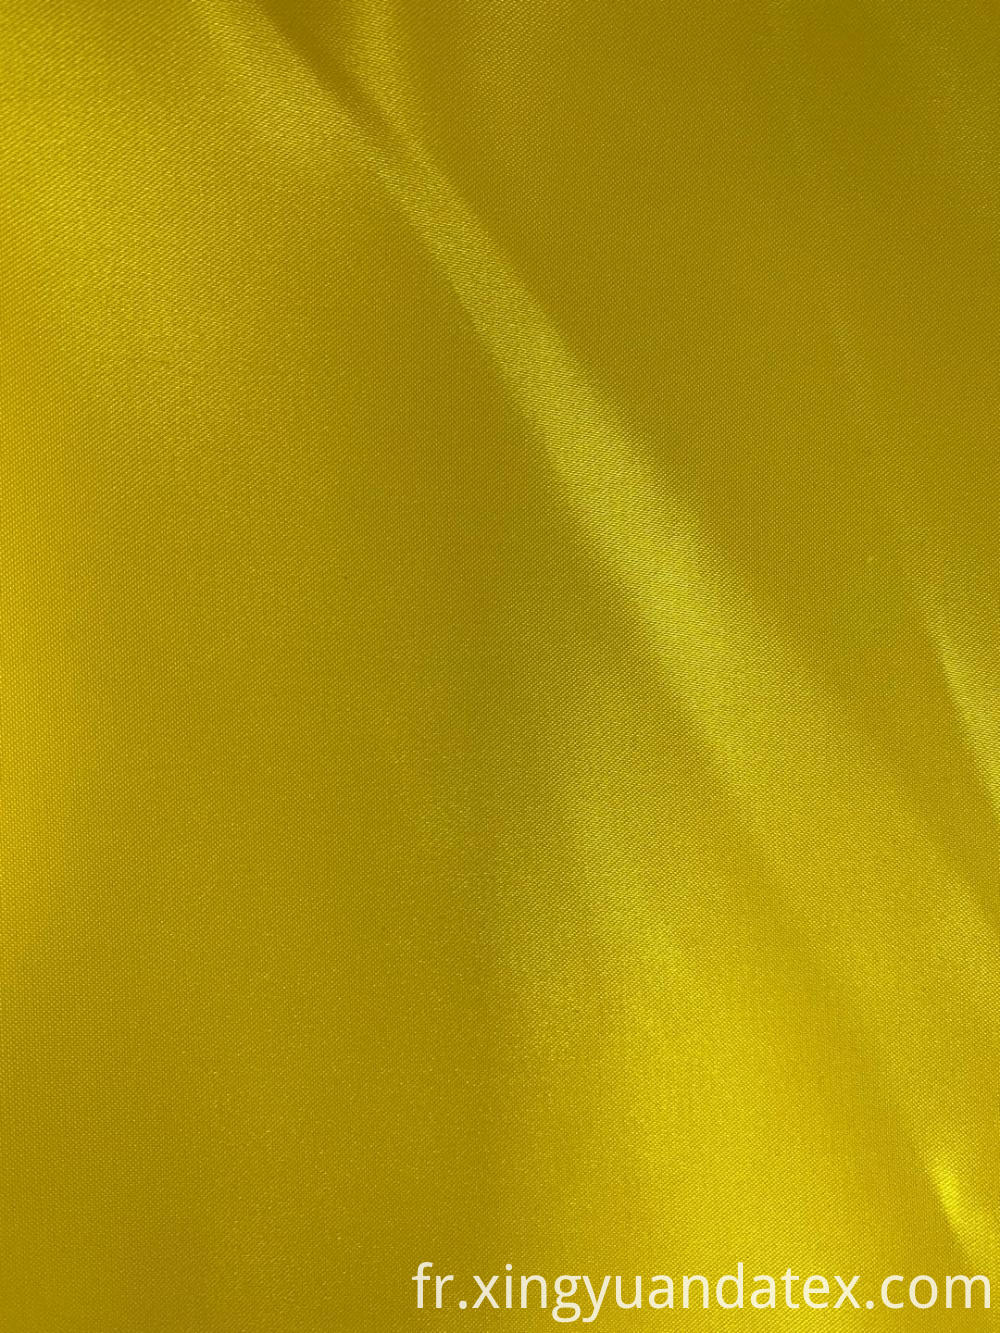 100 Percent Polyester Satin Fabric